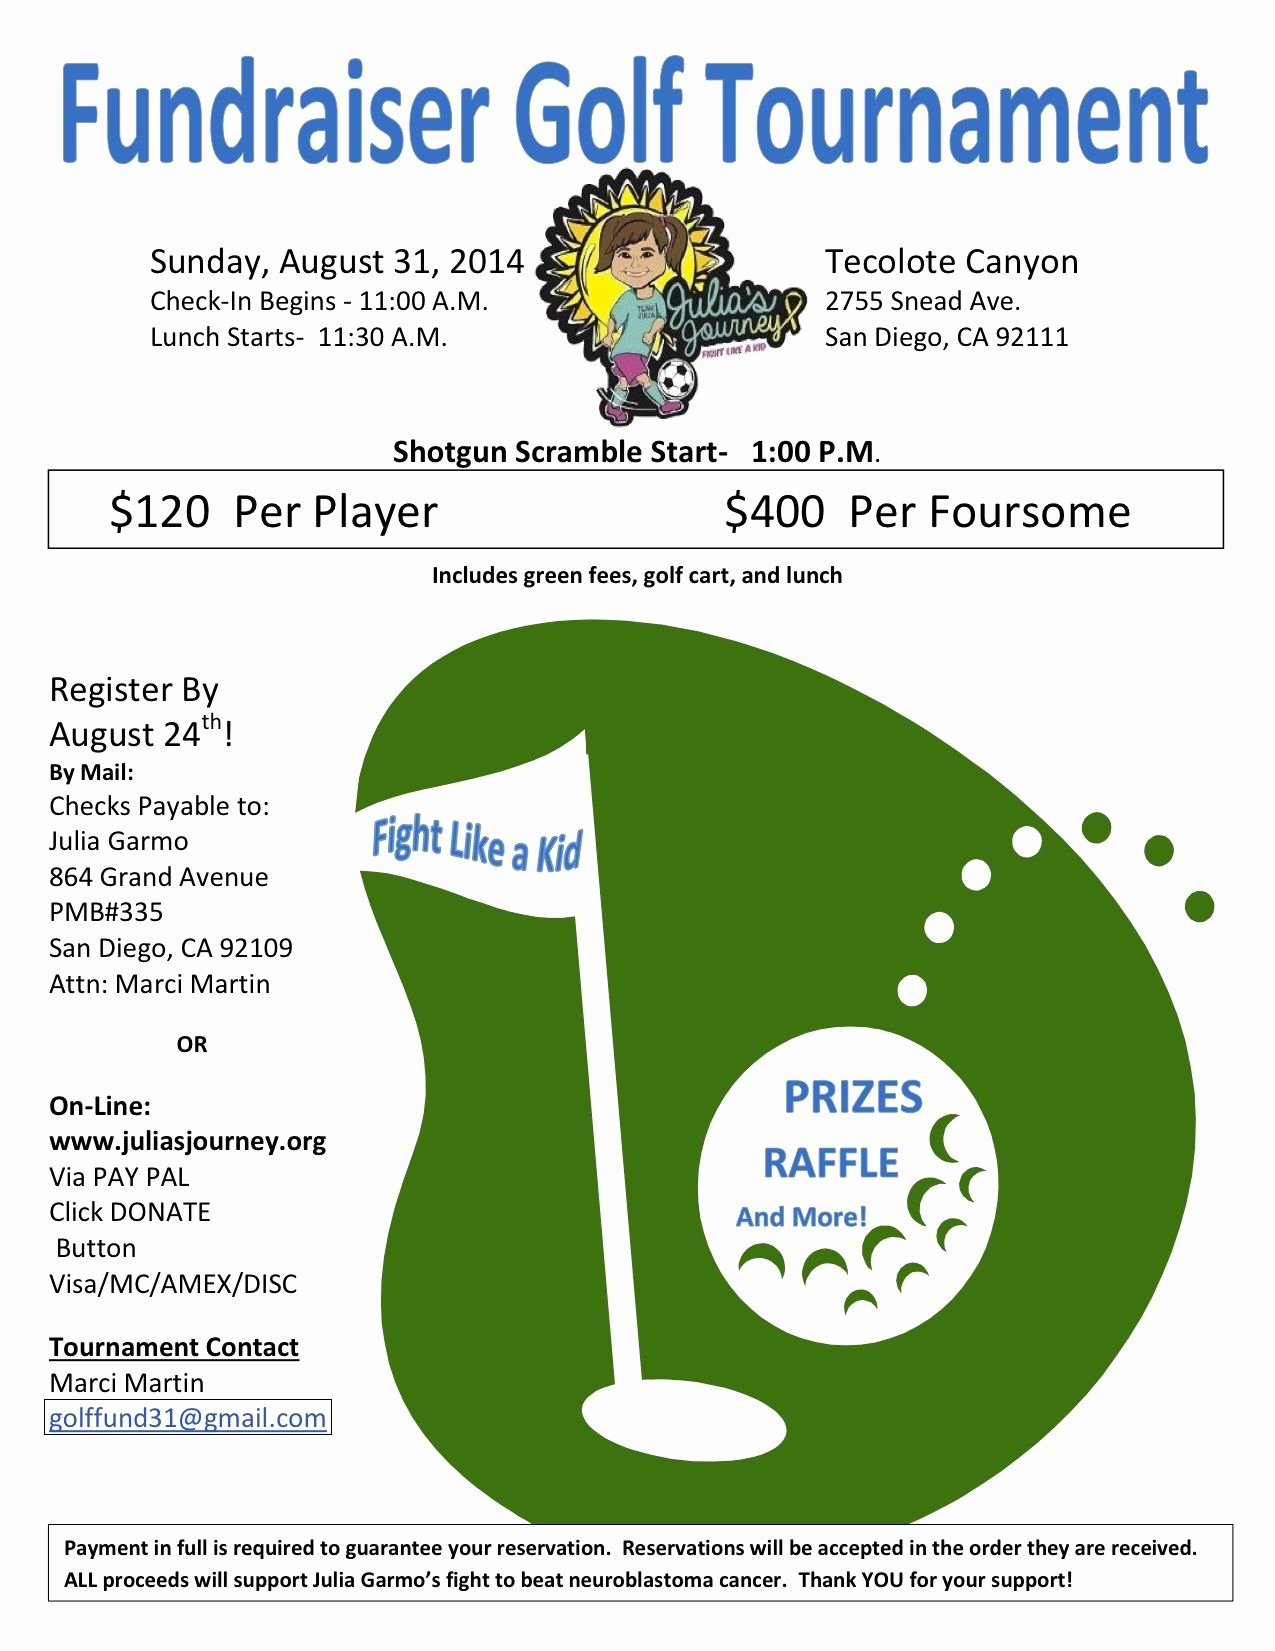 Golf tournament Fundraiser Flyer Lovely Julia S Journey Golf tournament Flyer 8 31 14 Golf Fundraiser Pinterest